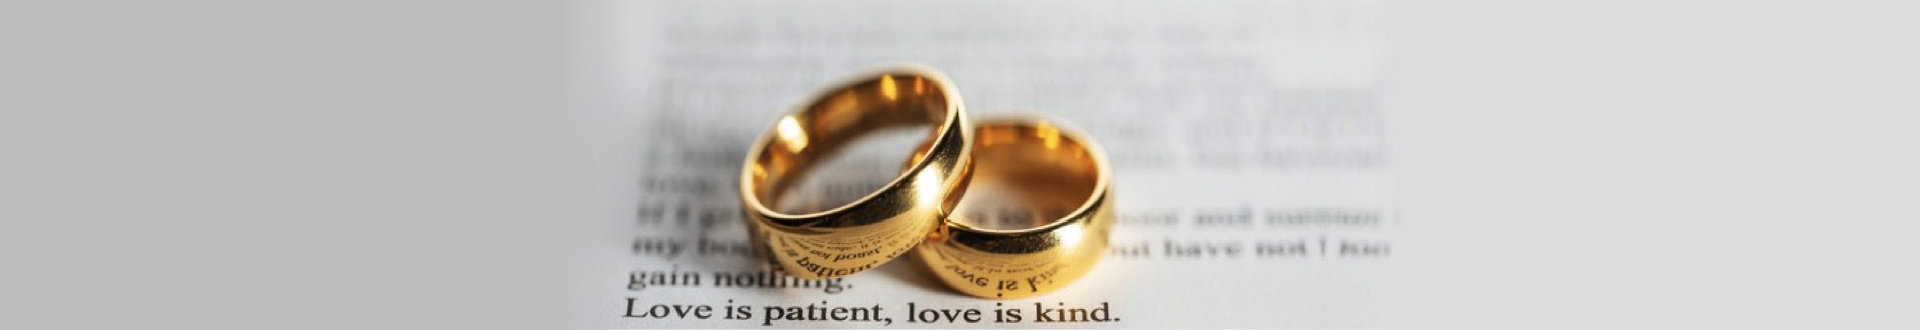 wedding rings on a bible